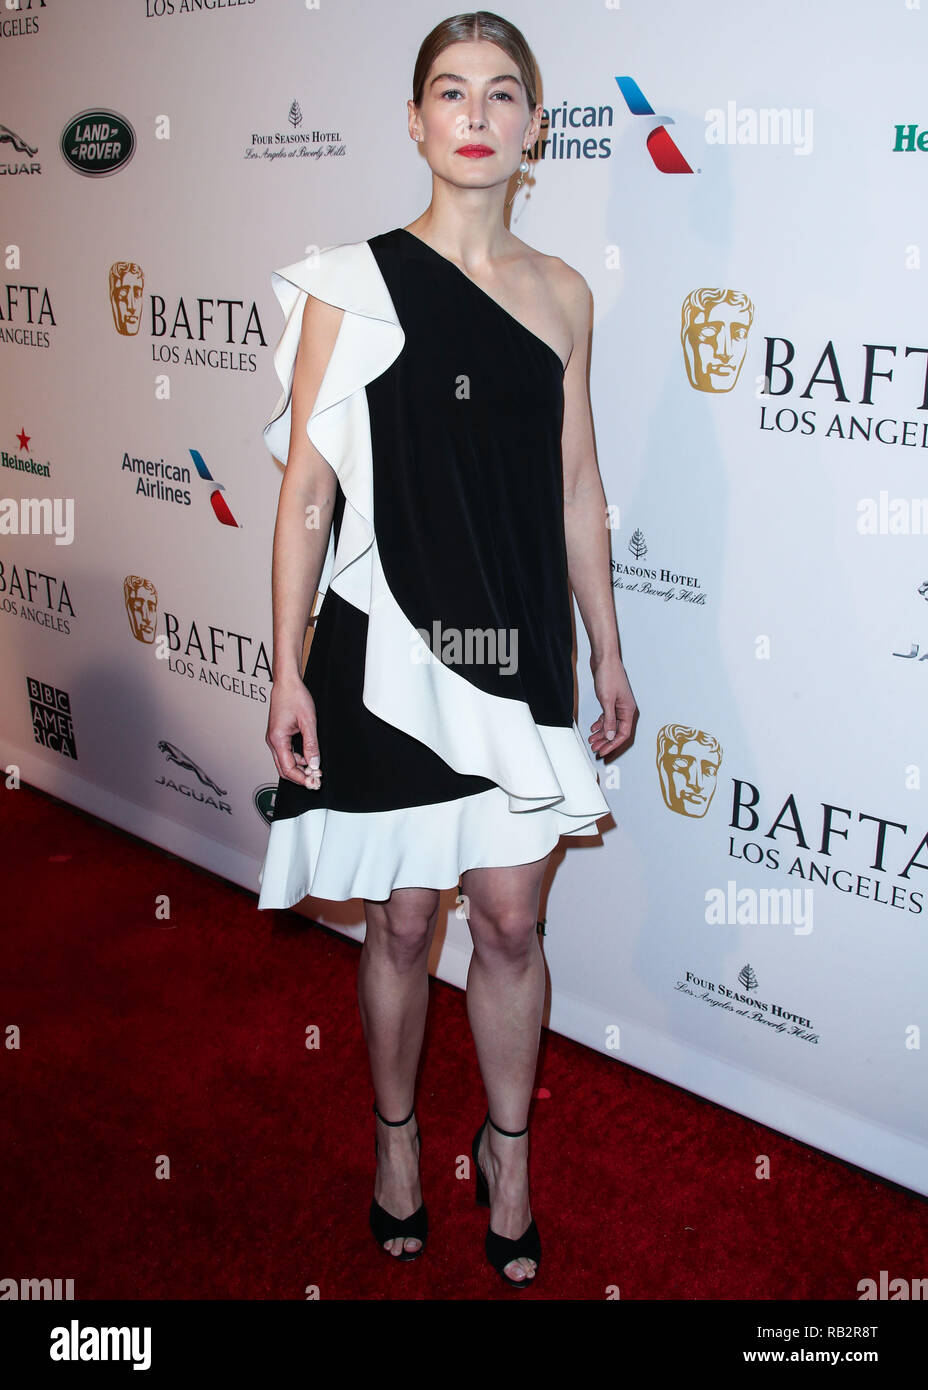 California, USA. 5th Jan 2019. Actress Rosamund Pike wearing Pierre Hardy shoes arrives at the BAFTA (British Academy of Film and Television Arts) Los Angeles Tea Party 2019 held at the Four Seasons Hotel Los Angeles at Beverly Hills on January 5, 2019 in Beverly Hills, Los Angeles, California, United States. (Photo by Xavier Collin/Image Press Agency) Credit: Image Press Agency/Alamy Live News - Stock Image